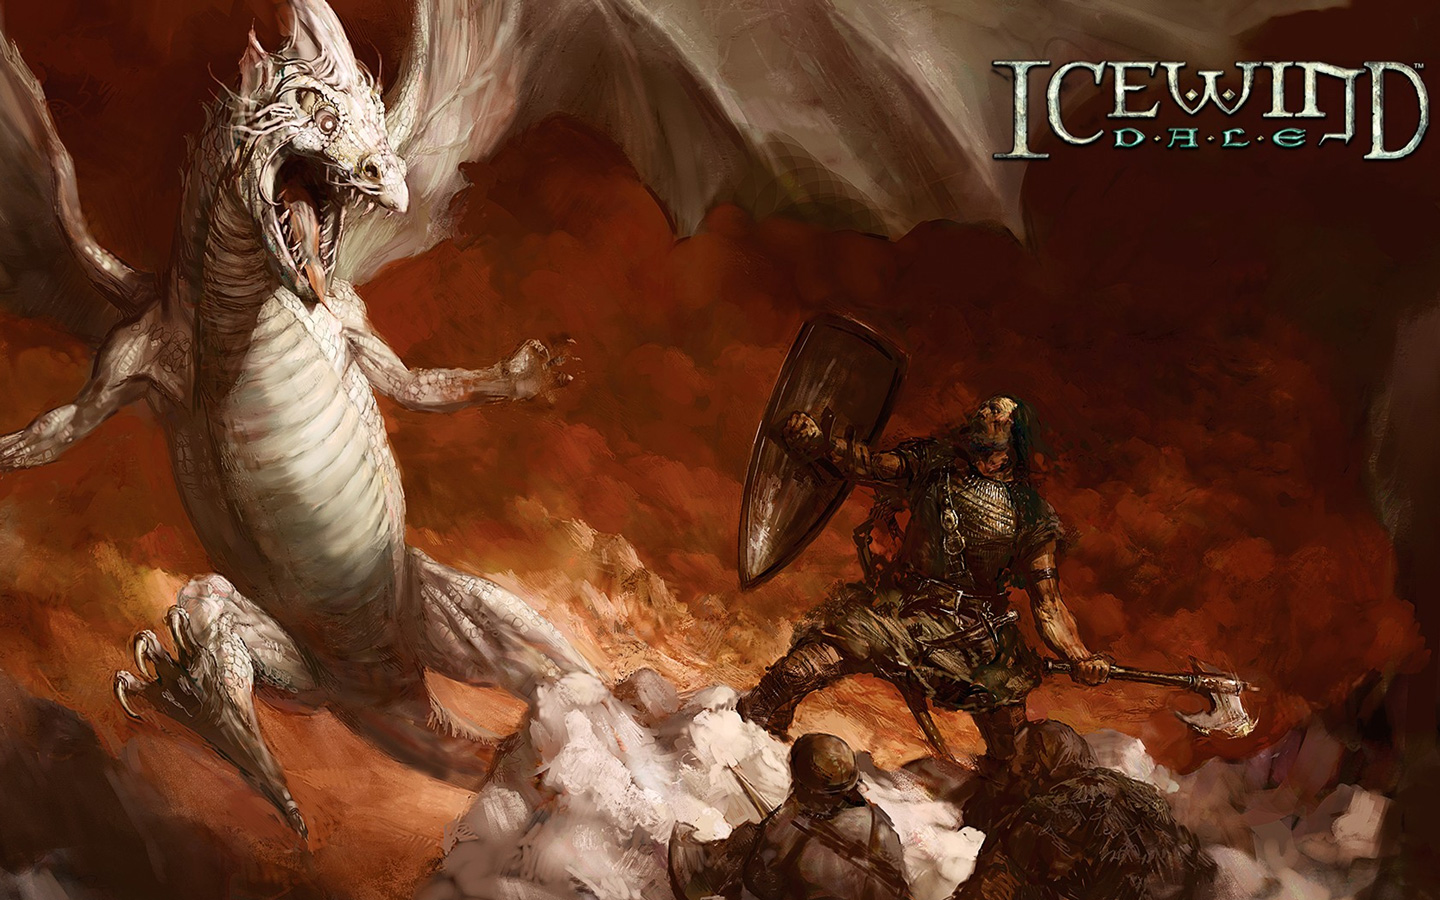 Free Icewind Dale Wallpaper in 1440x900